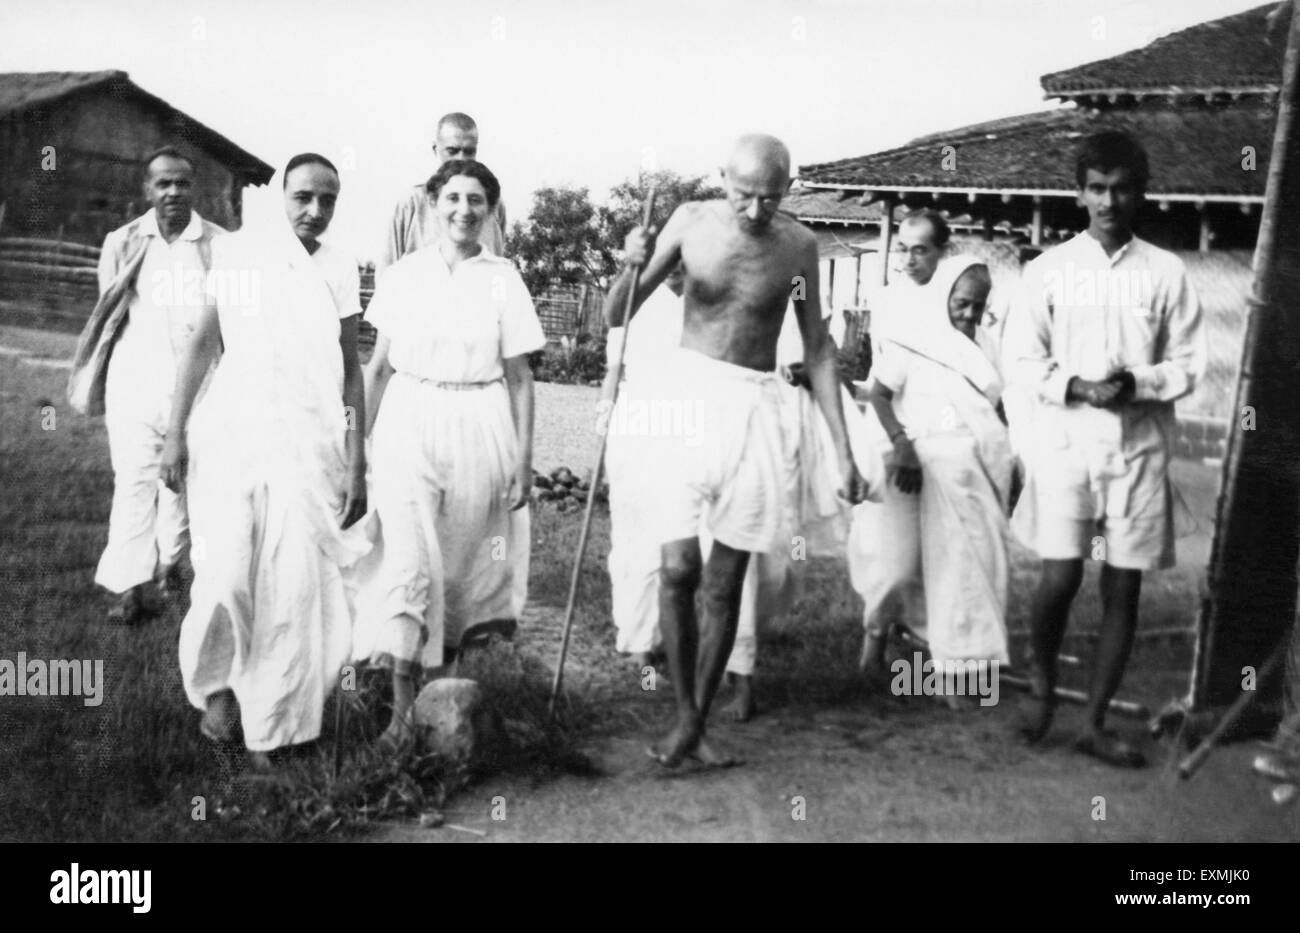 Balwant Singh presents a newborn four hours old calf to Mahatma Gandhi and others at Sevagram Ashram ; 1940 NO MR - Stock Image